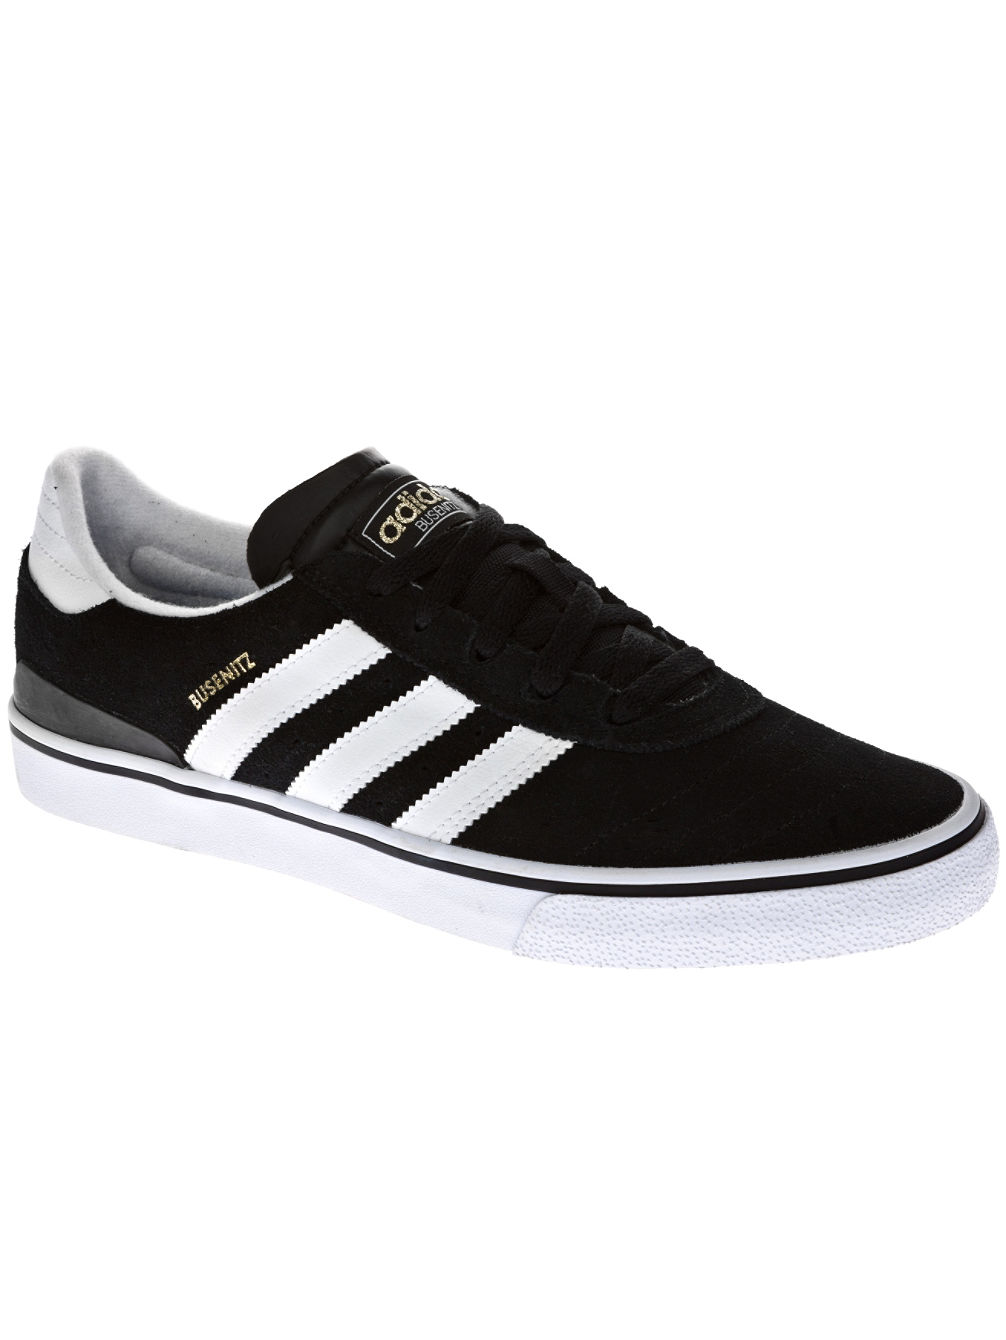 Busenitz Vulc Skate Shoes